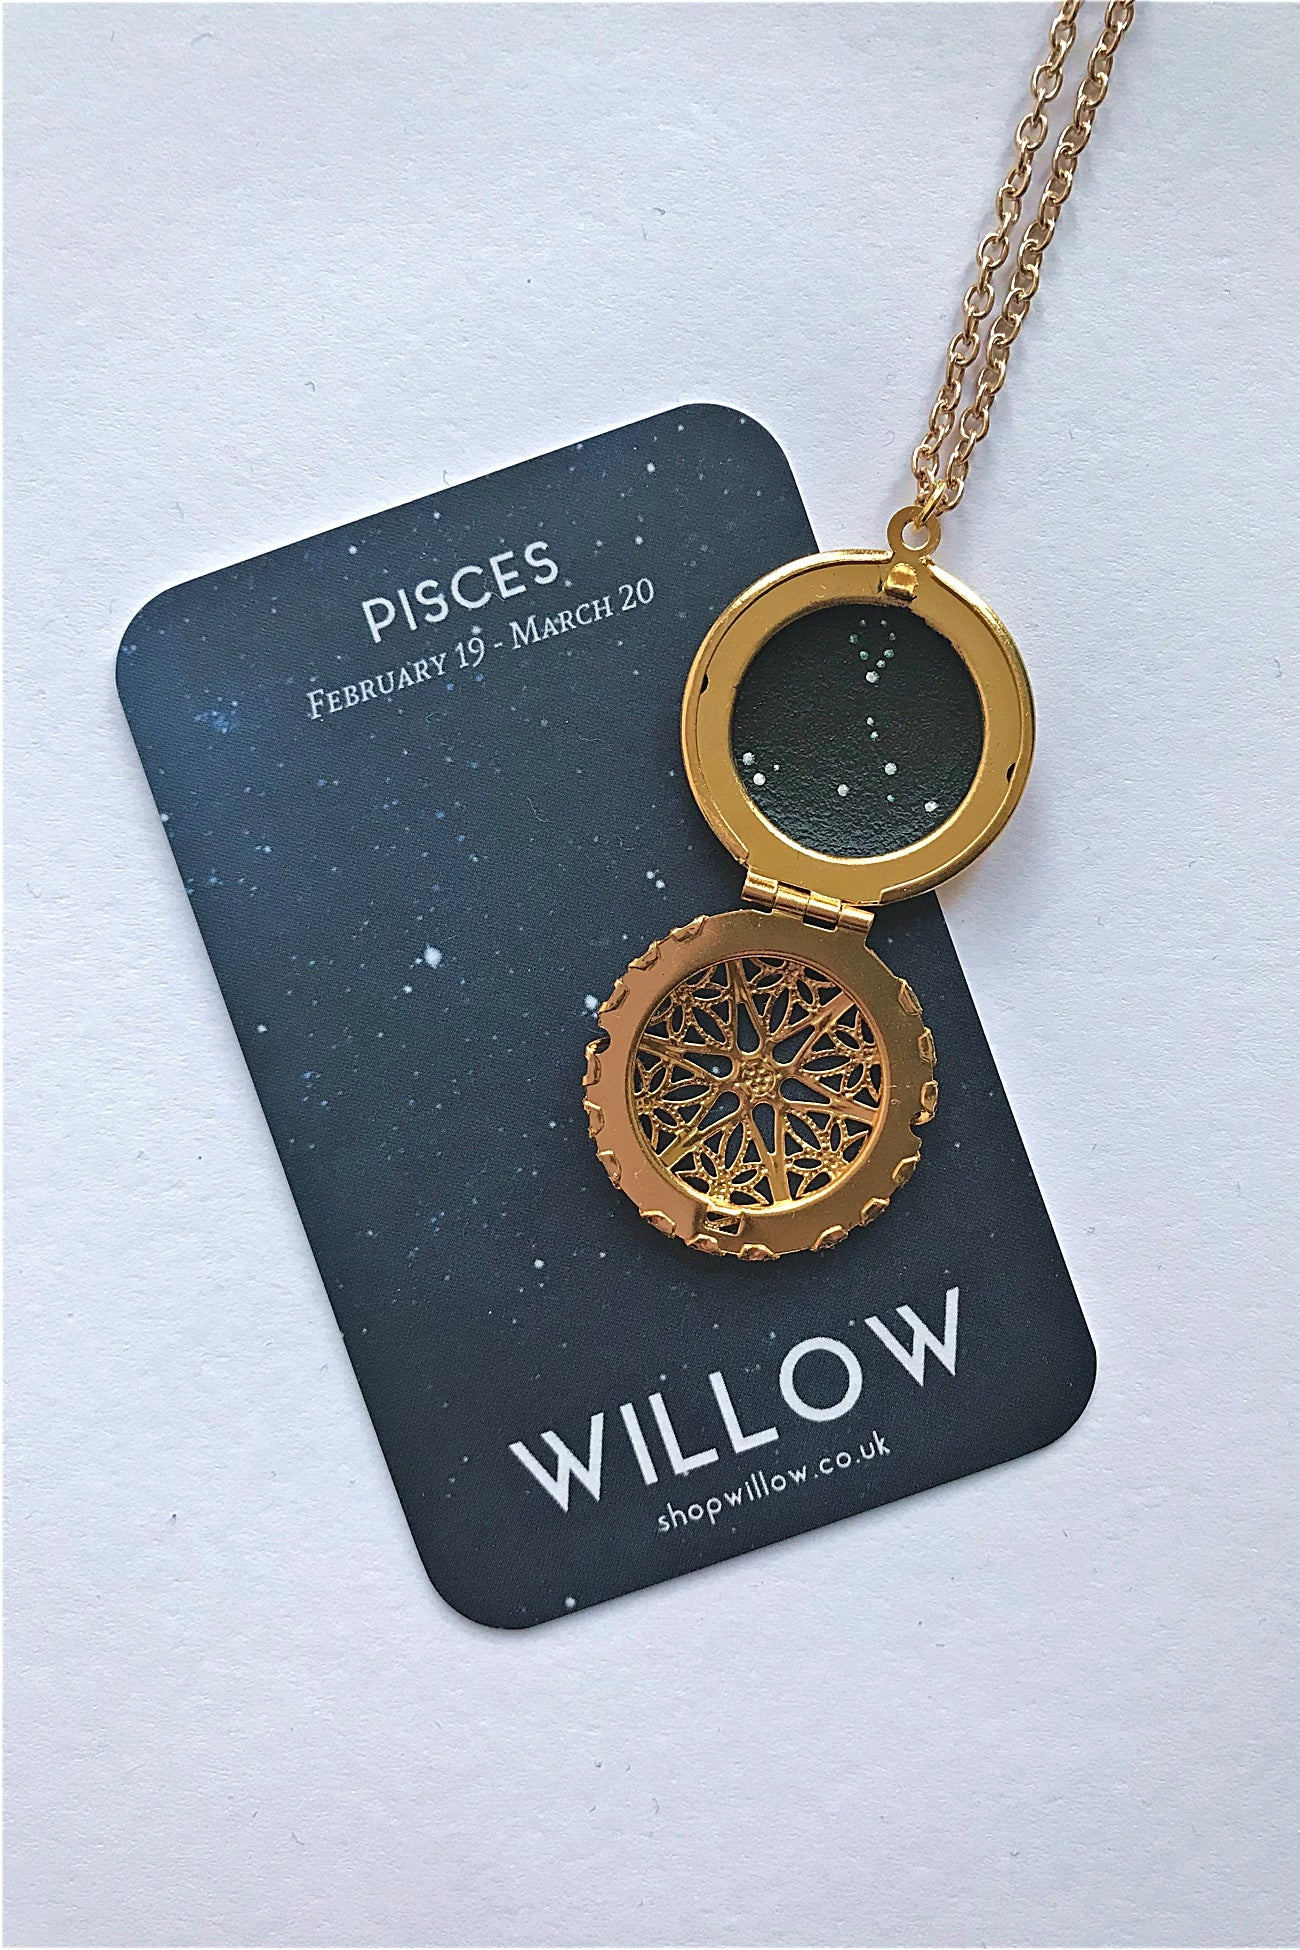 Pisces constellation locket